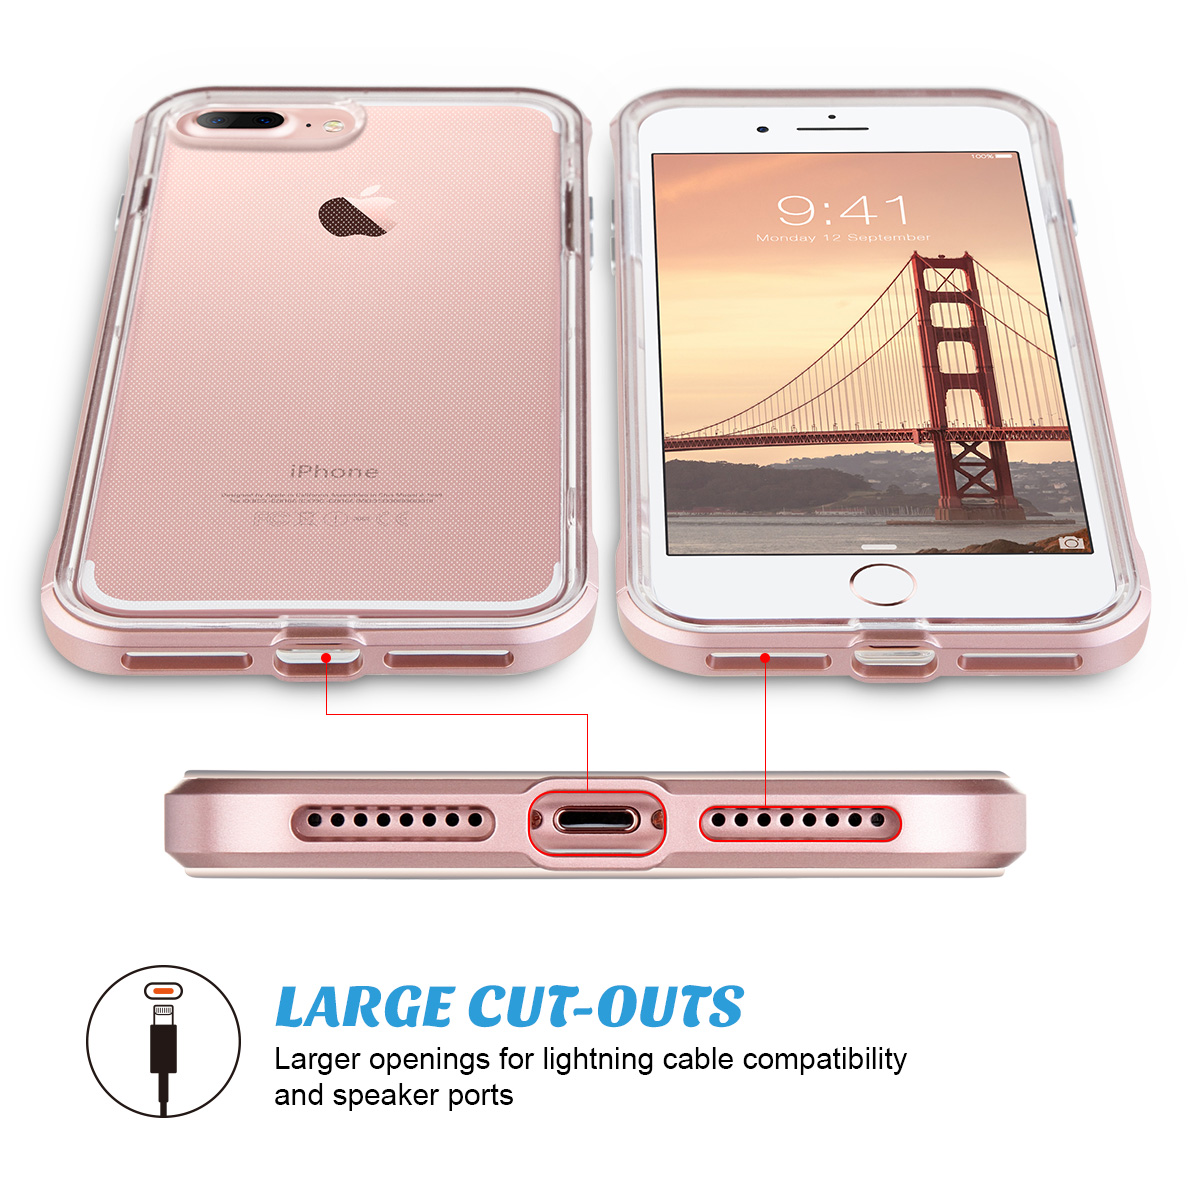 02eee3de99 ULAK Reinforced Clear Hybrid Case for Apple iPhone 7 Plus, Gold -  Walmart.com